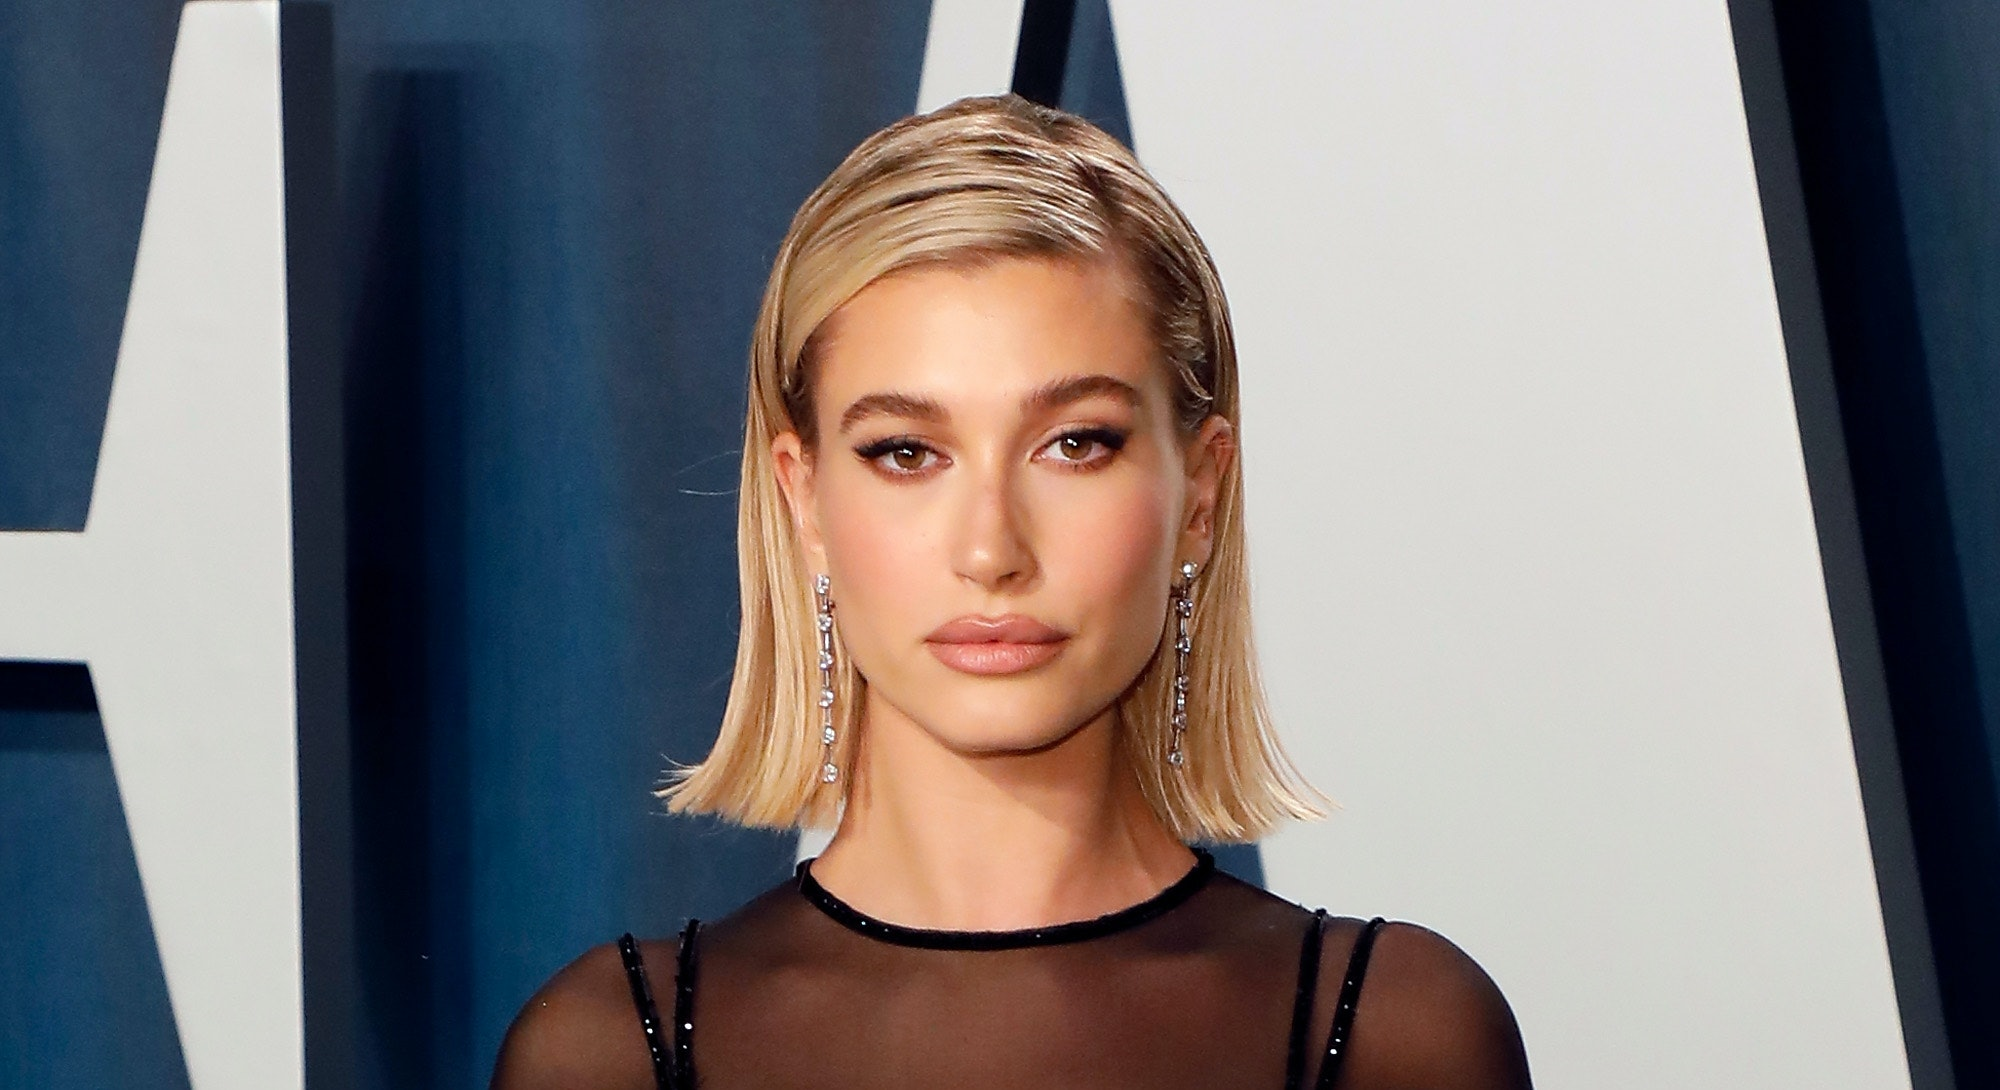 BEVERLY HILLS, CALIFORNIA - FEBRUARY 09: Hailey Bieber attends the Vanity Fair Oscar Party at Wallis Annenberg Center for the Performing Arts on February 09, 2020 in Beverly Hills, California. (Photo by Taylor Hill/FilmMagic,)